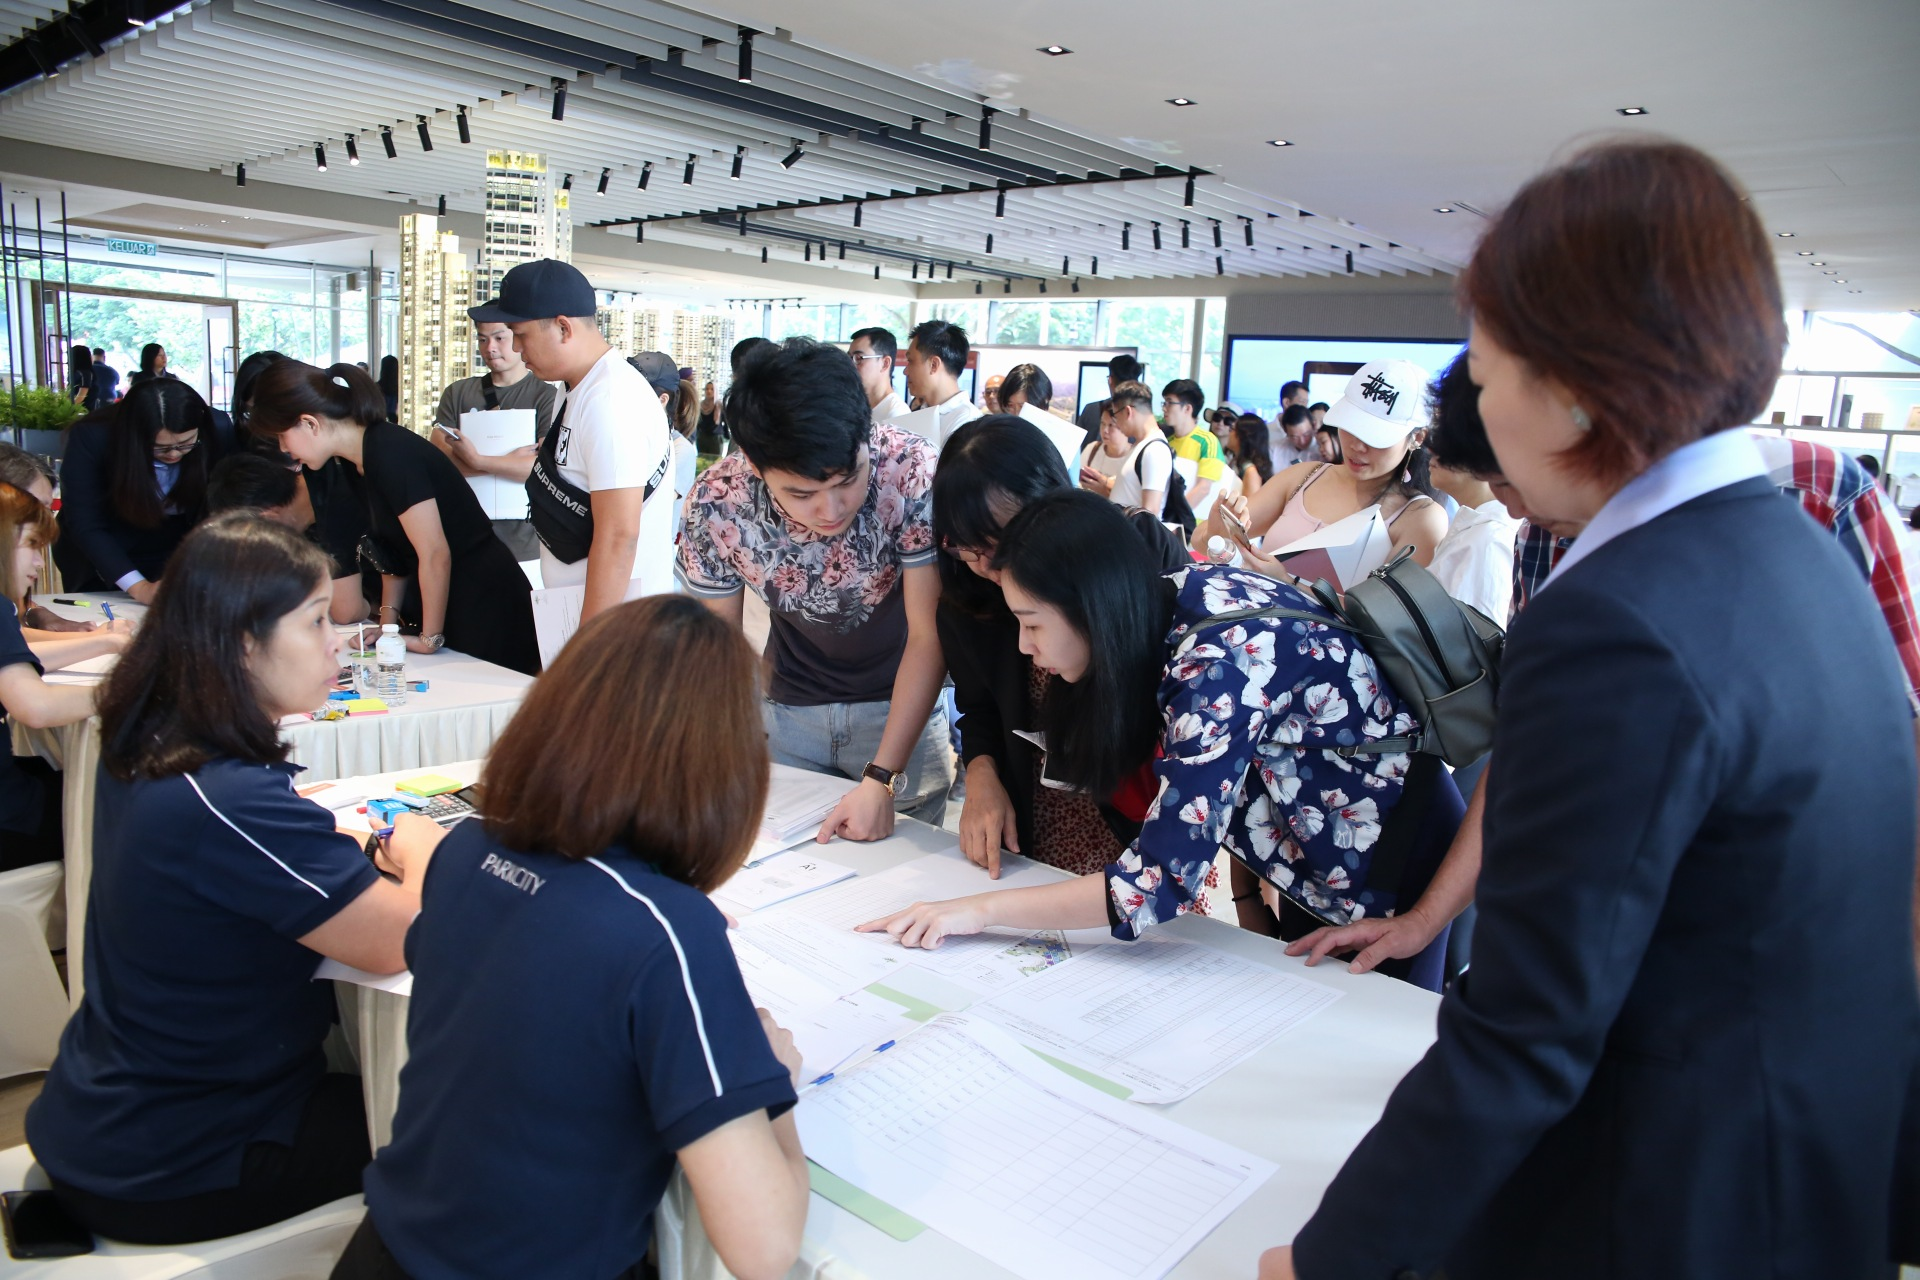 CAPITALAND PARK REGENT - As at 6pm on Sunday 28 July, more than 70% of the development's total 505 units were sold at an average selling price of RM1,100 per square foot